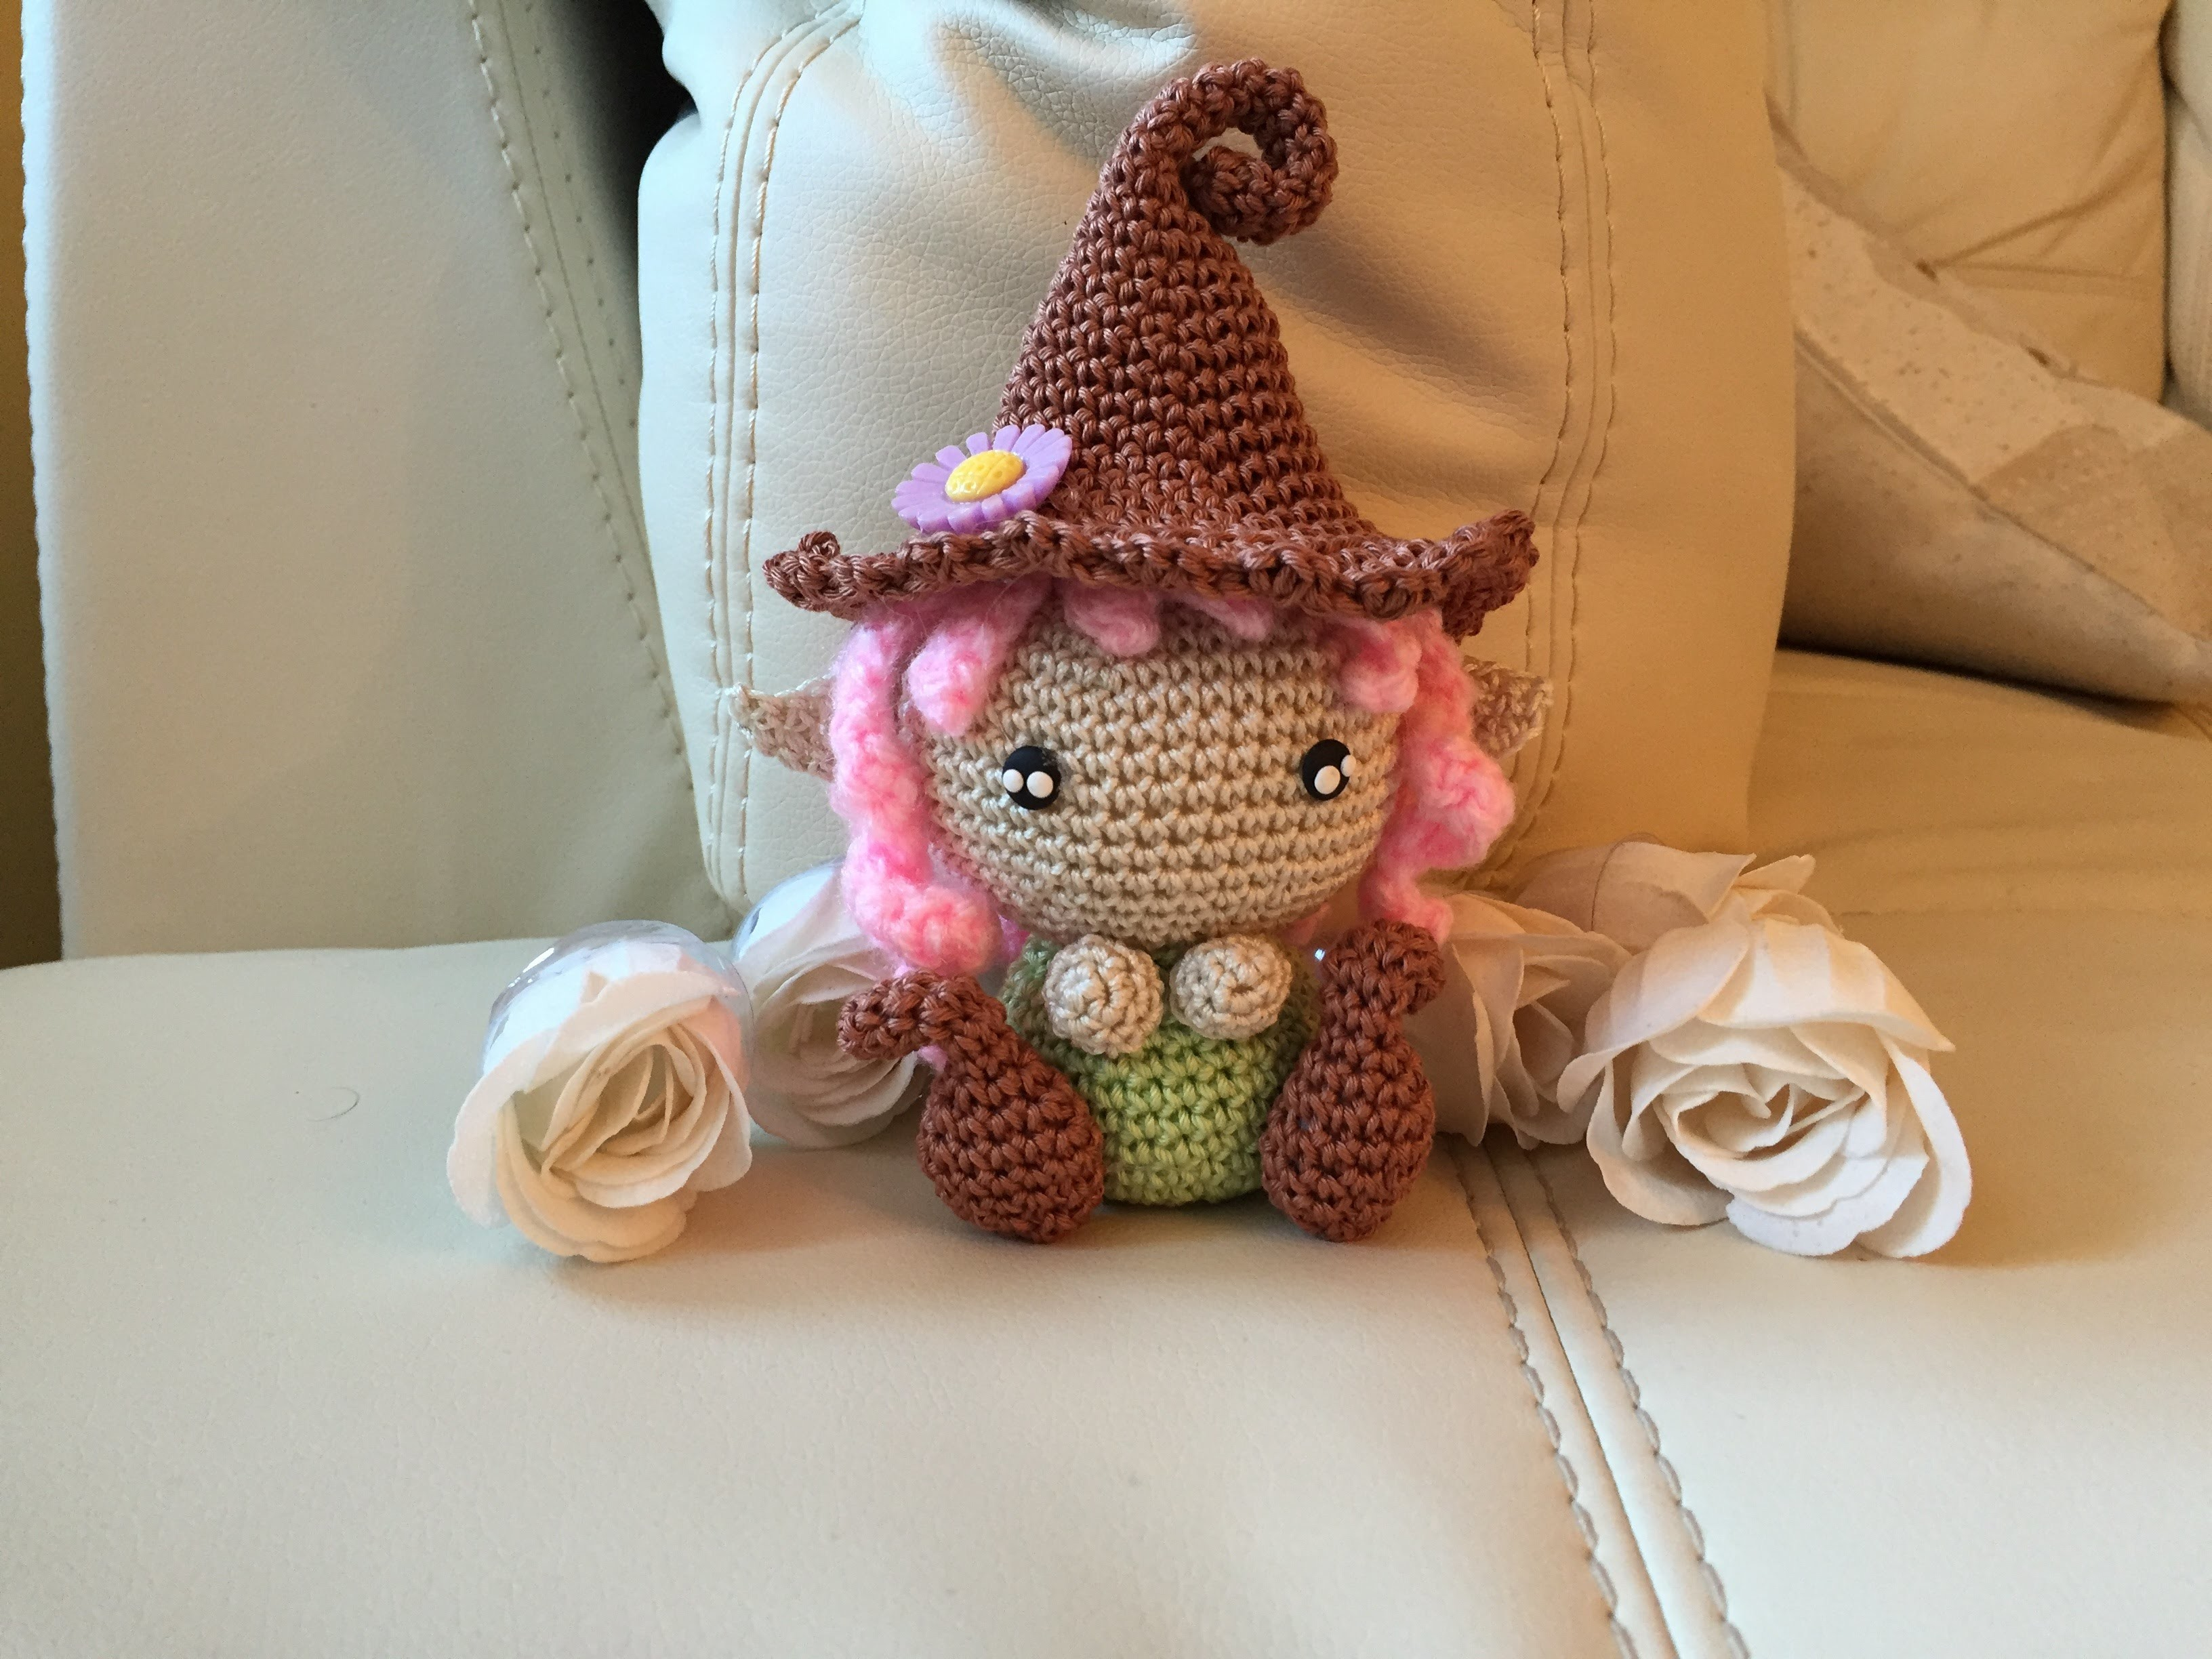 Folletto gnomo Amigurumi tutorial-schema.How to crochet elf Amigurumi